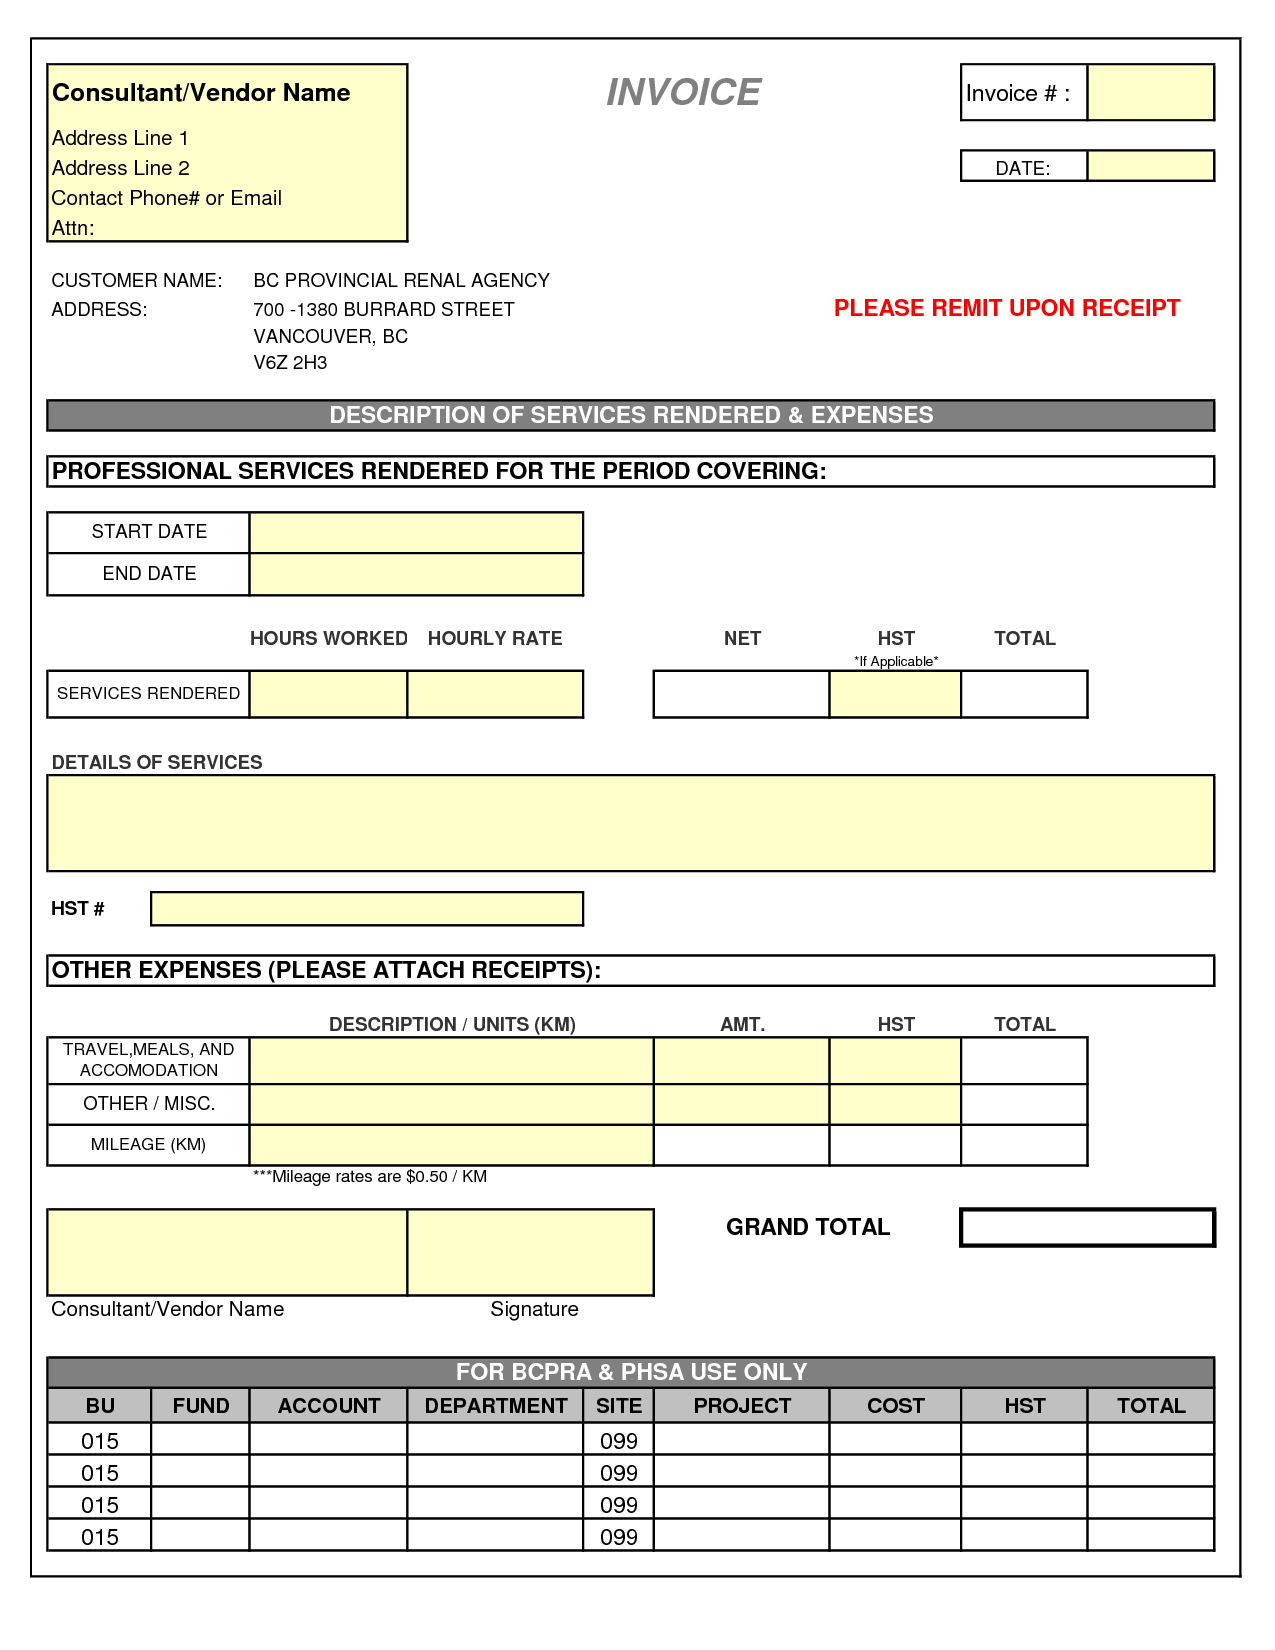 Simple Invoice Template Excel Jongblogcom Bd7df5gq